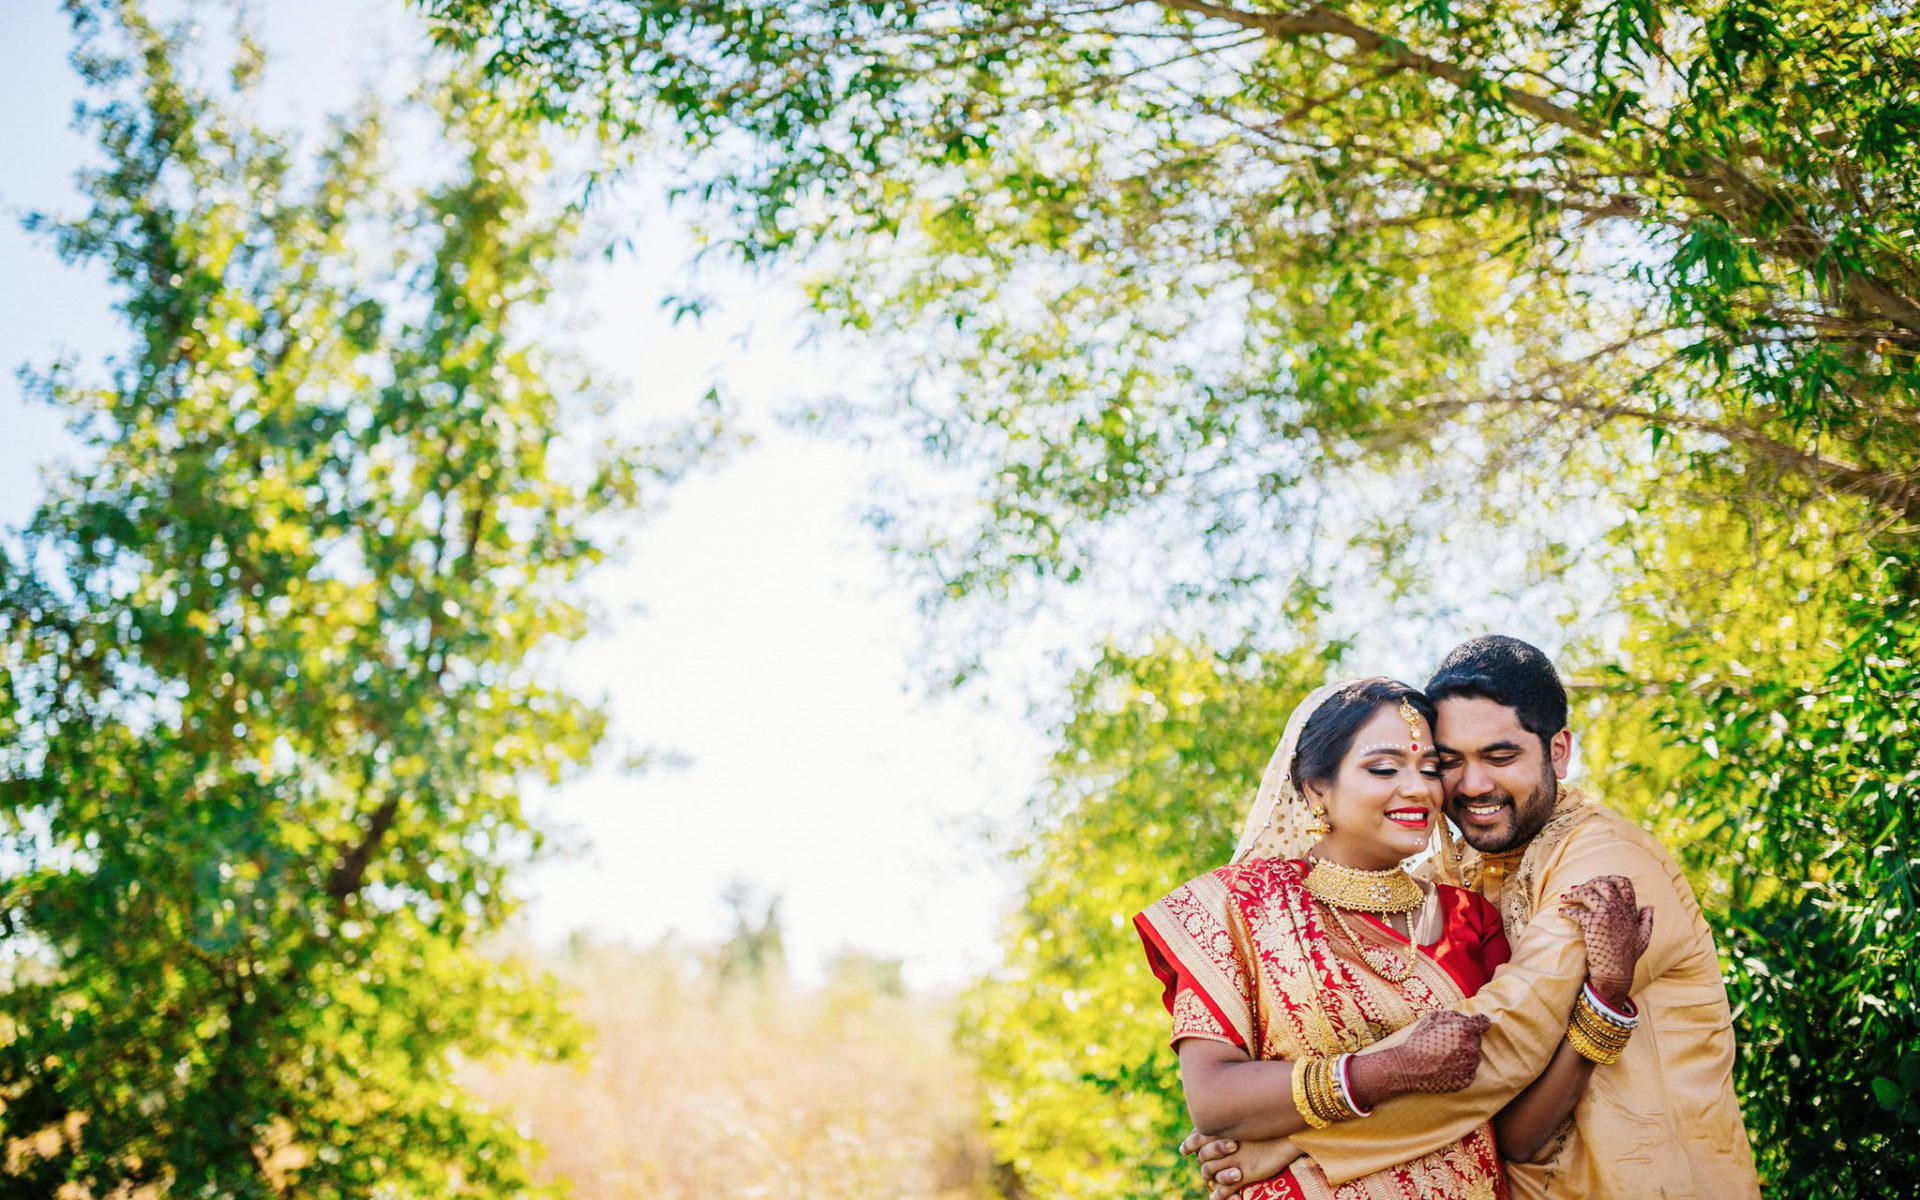 Mohana and Yogesh - A Bengali wedding!